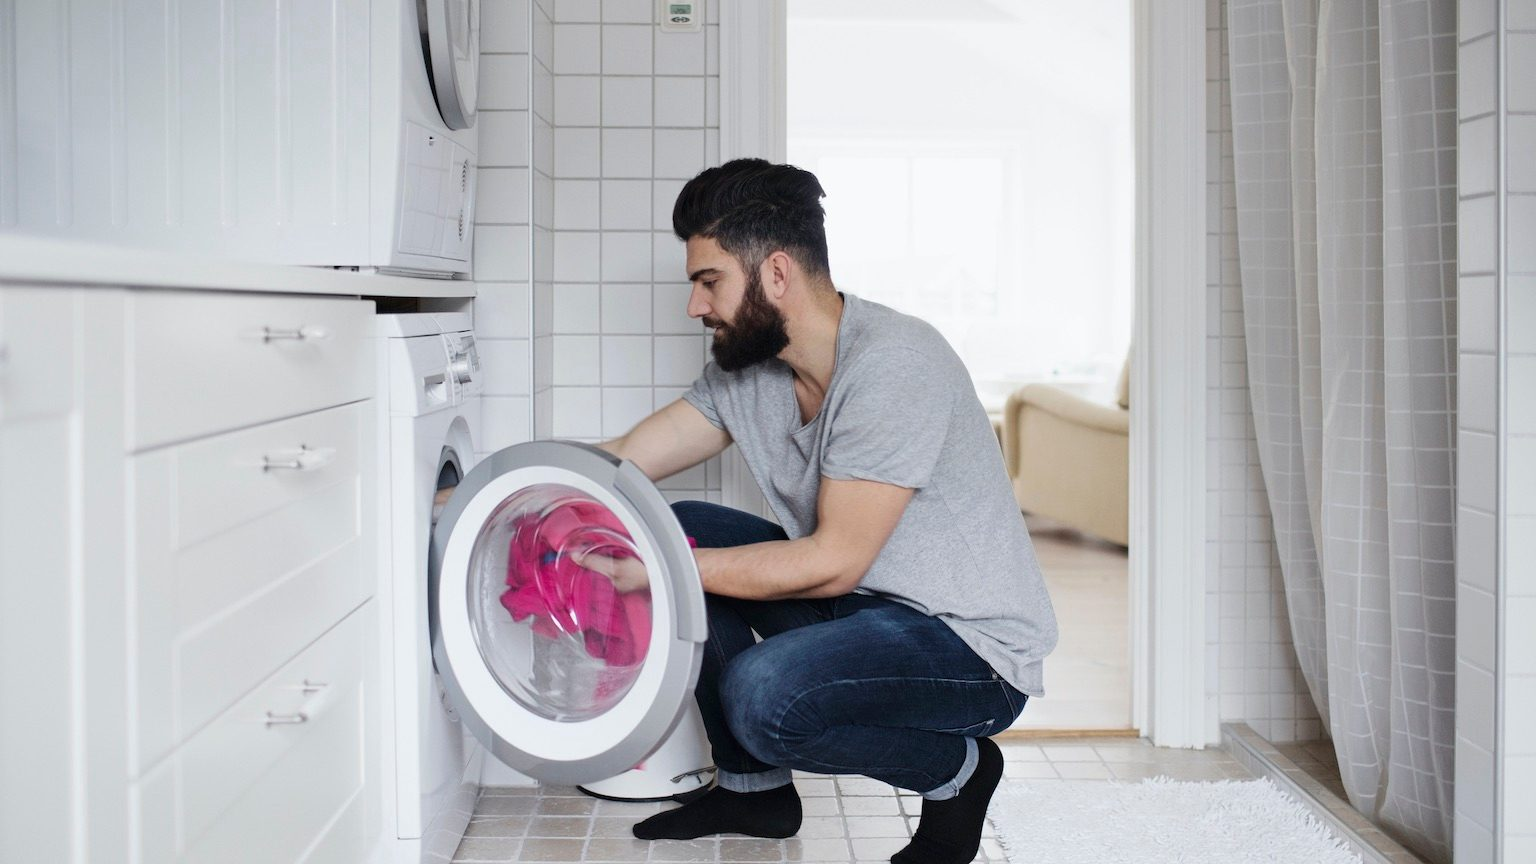 man crouching while loading clothes in washing machine at home